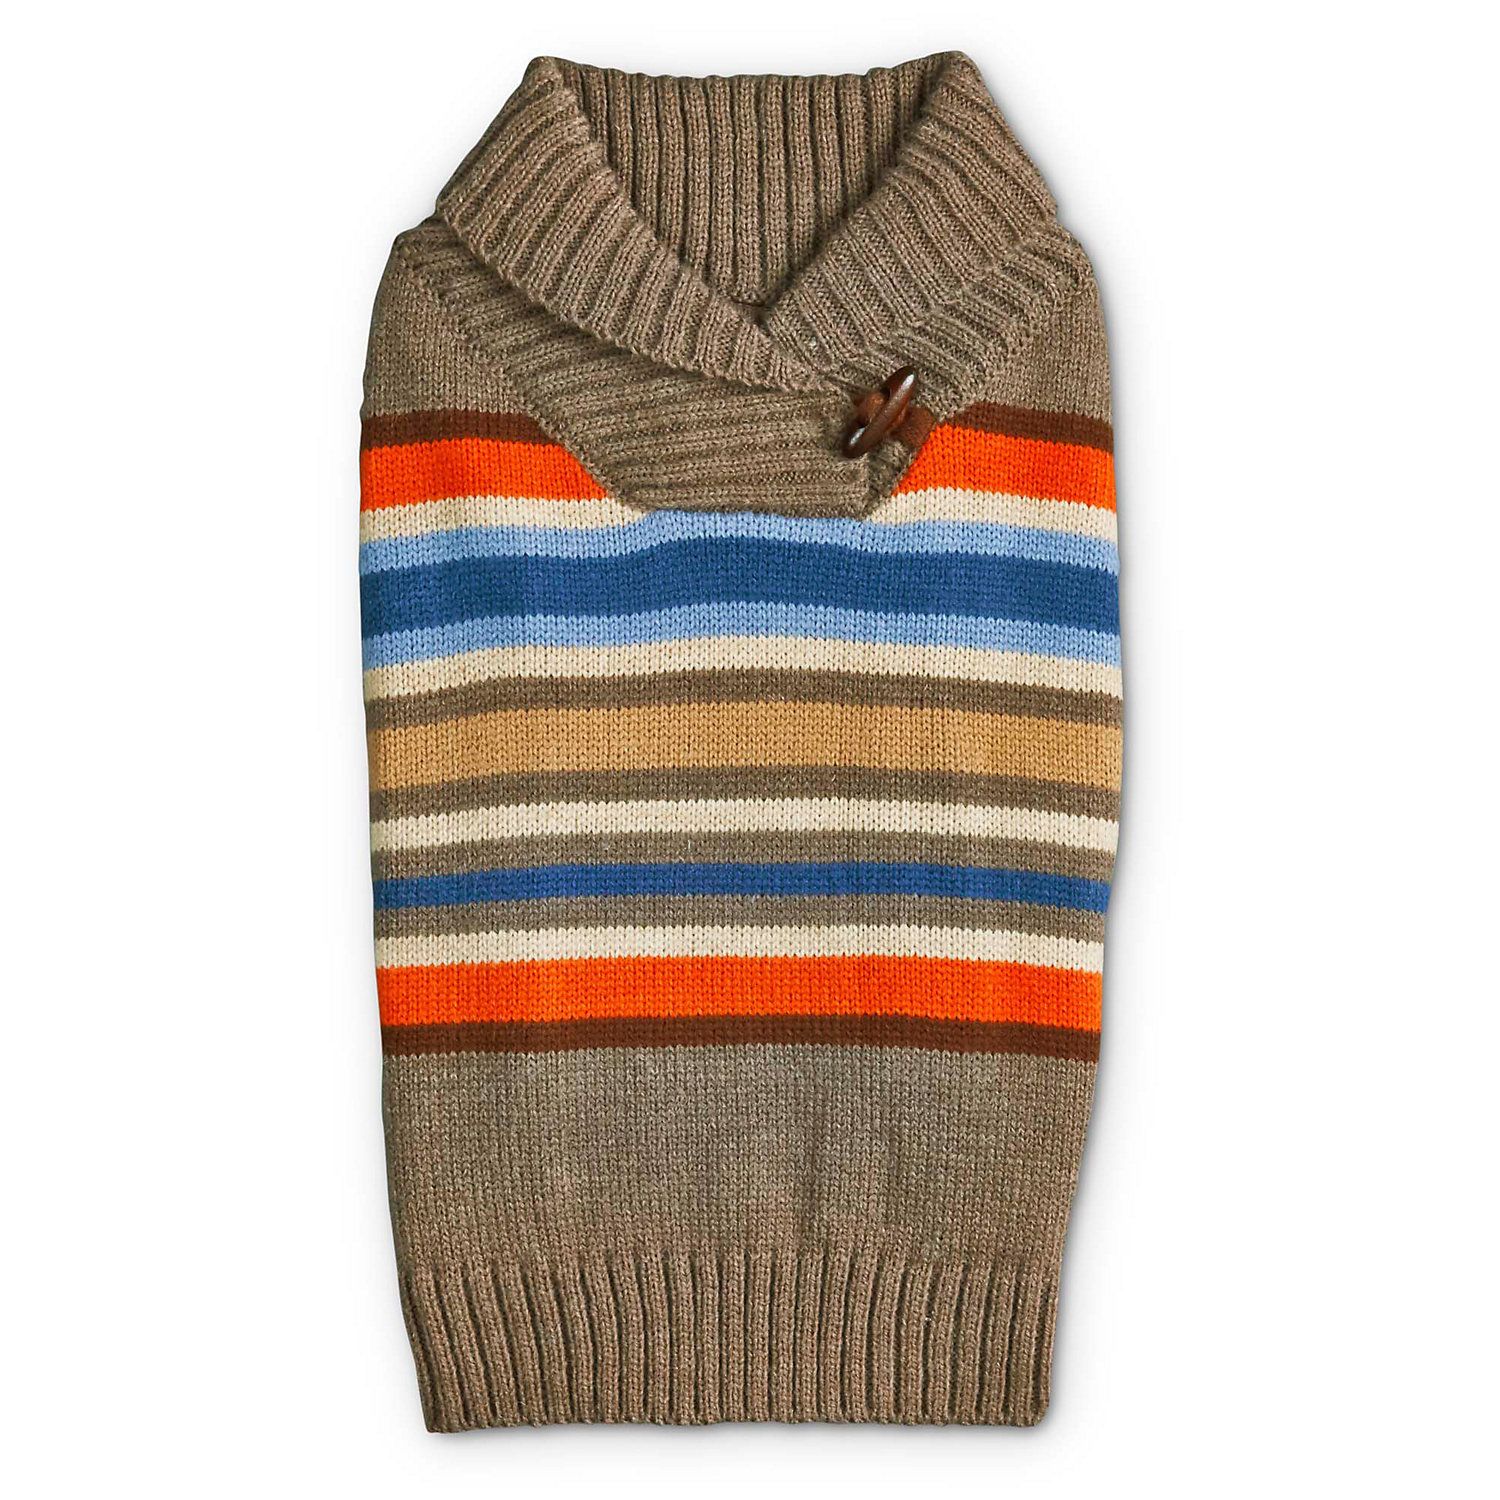 Bond & Co. Striped Shawl Collar Dog Sweater, 3x-large, Tan